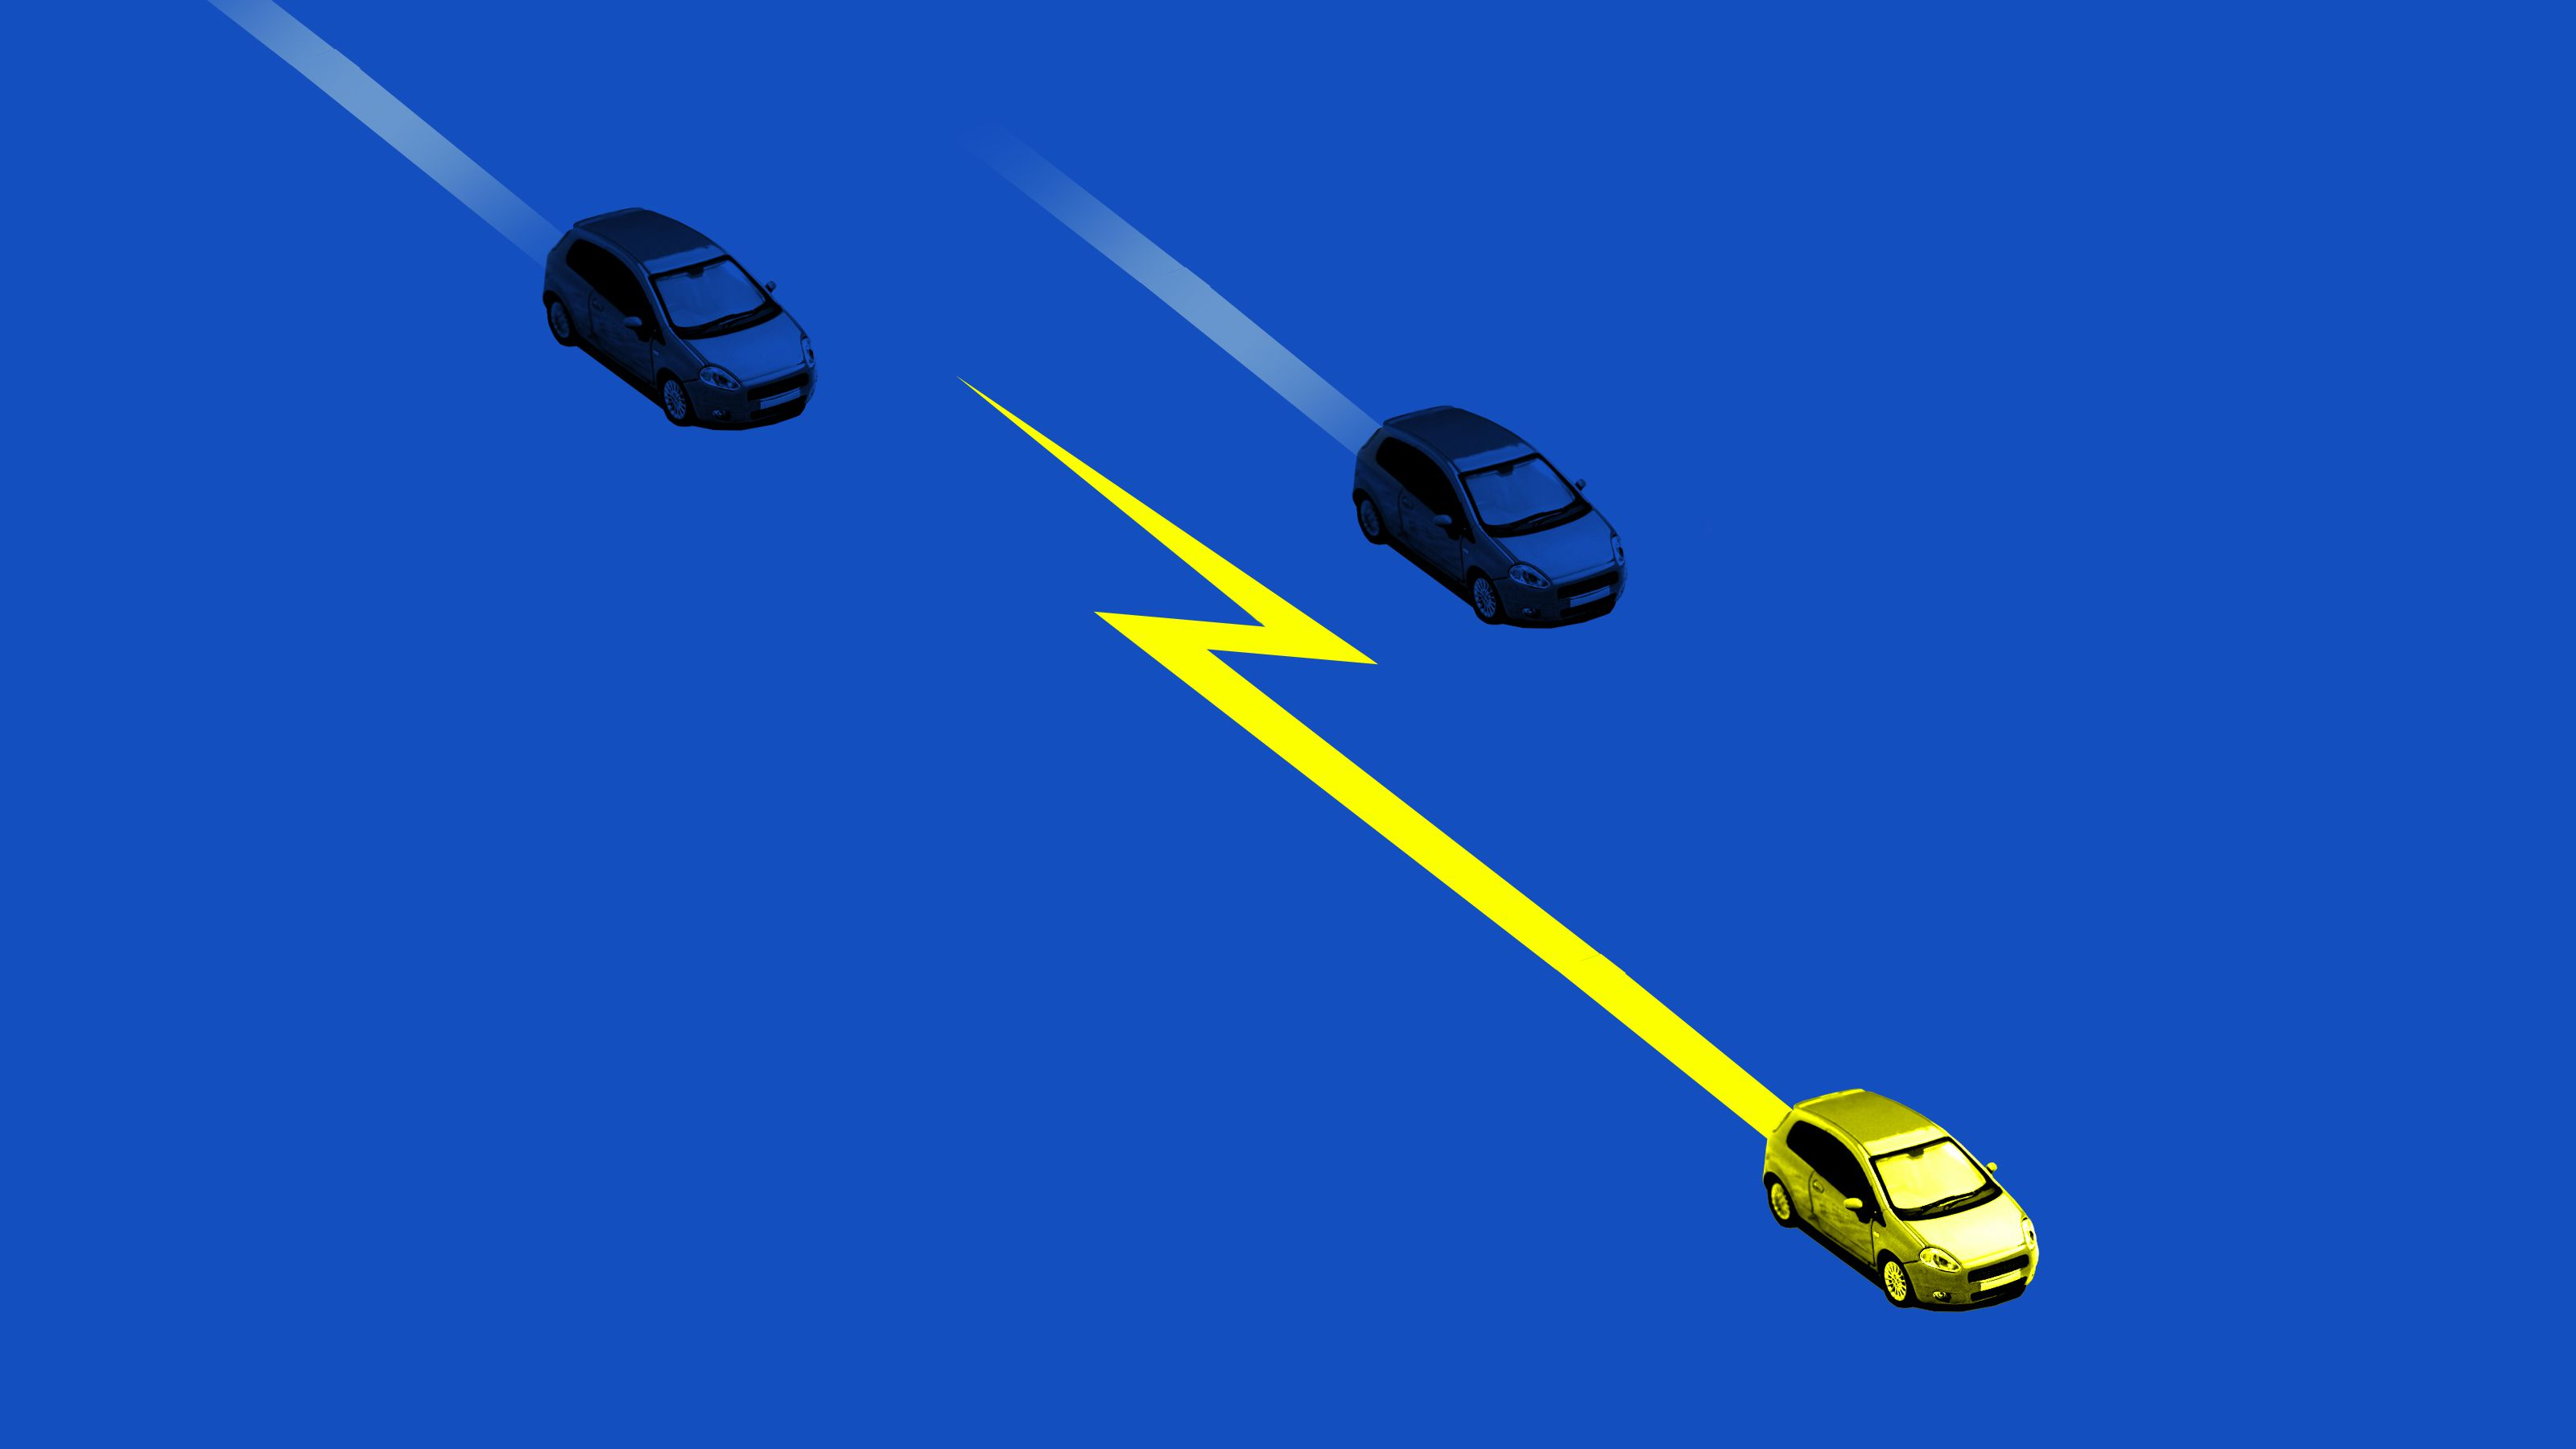 Illustration of an electric car trailed by a lightning bolt